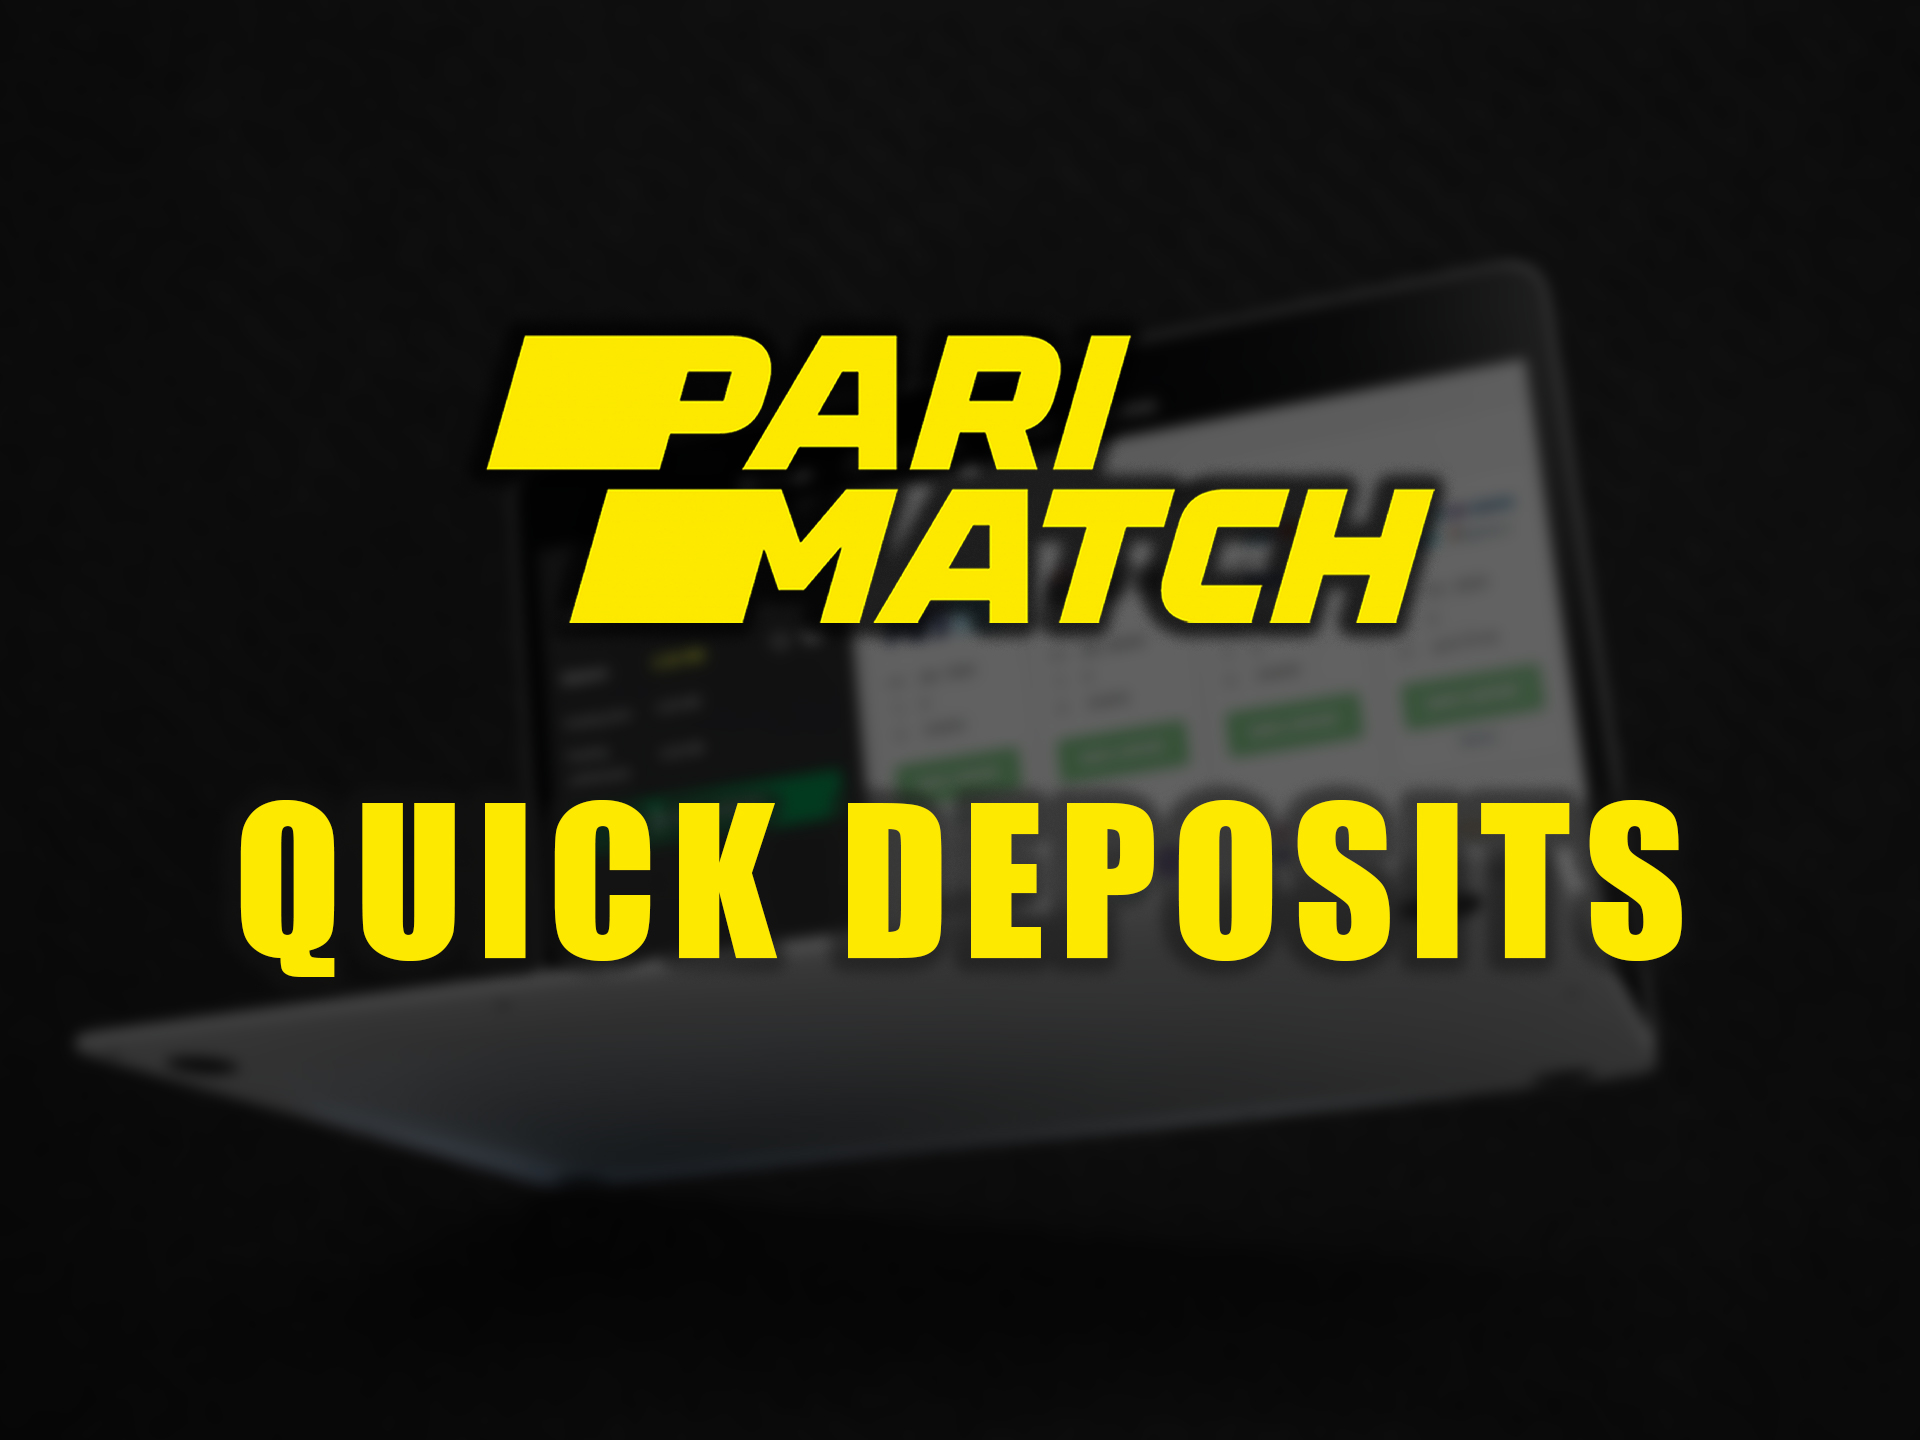 Quick deposits are a convenient option for users.